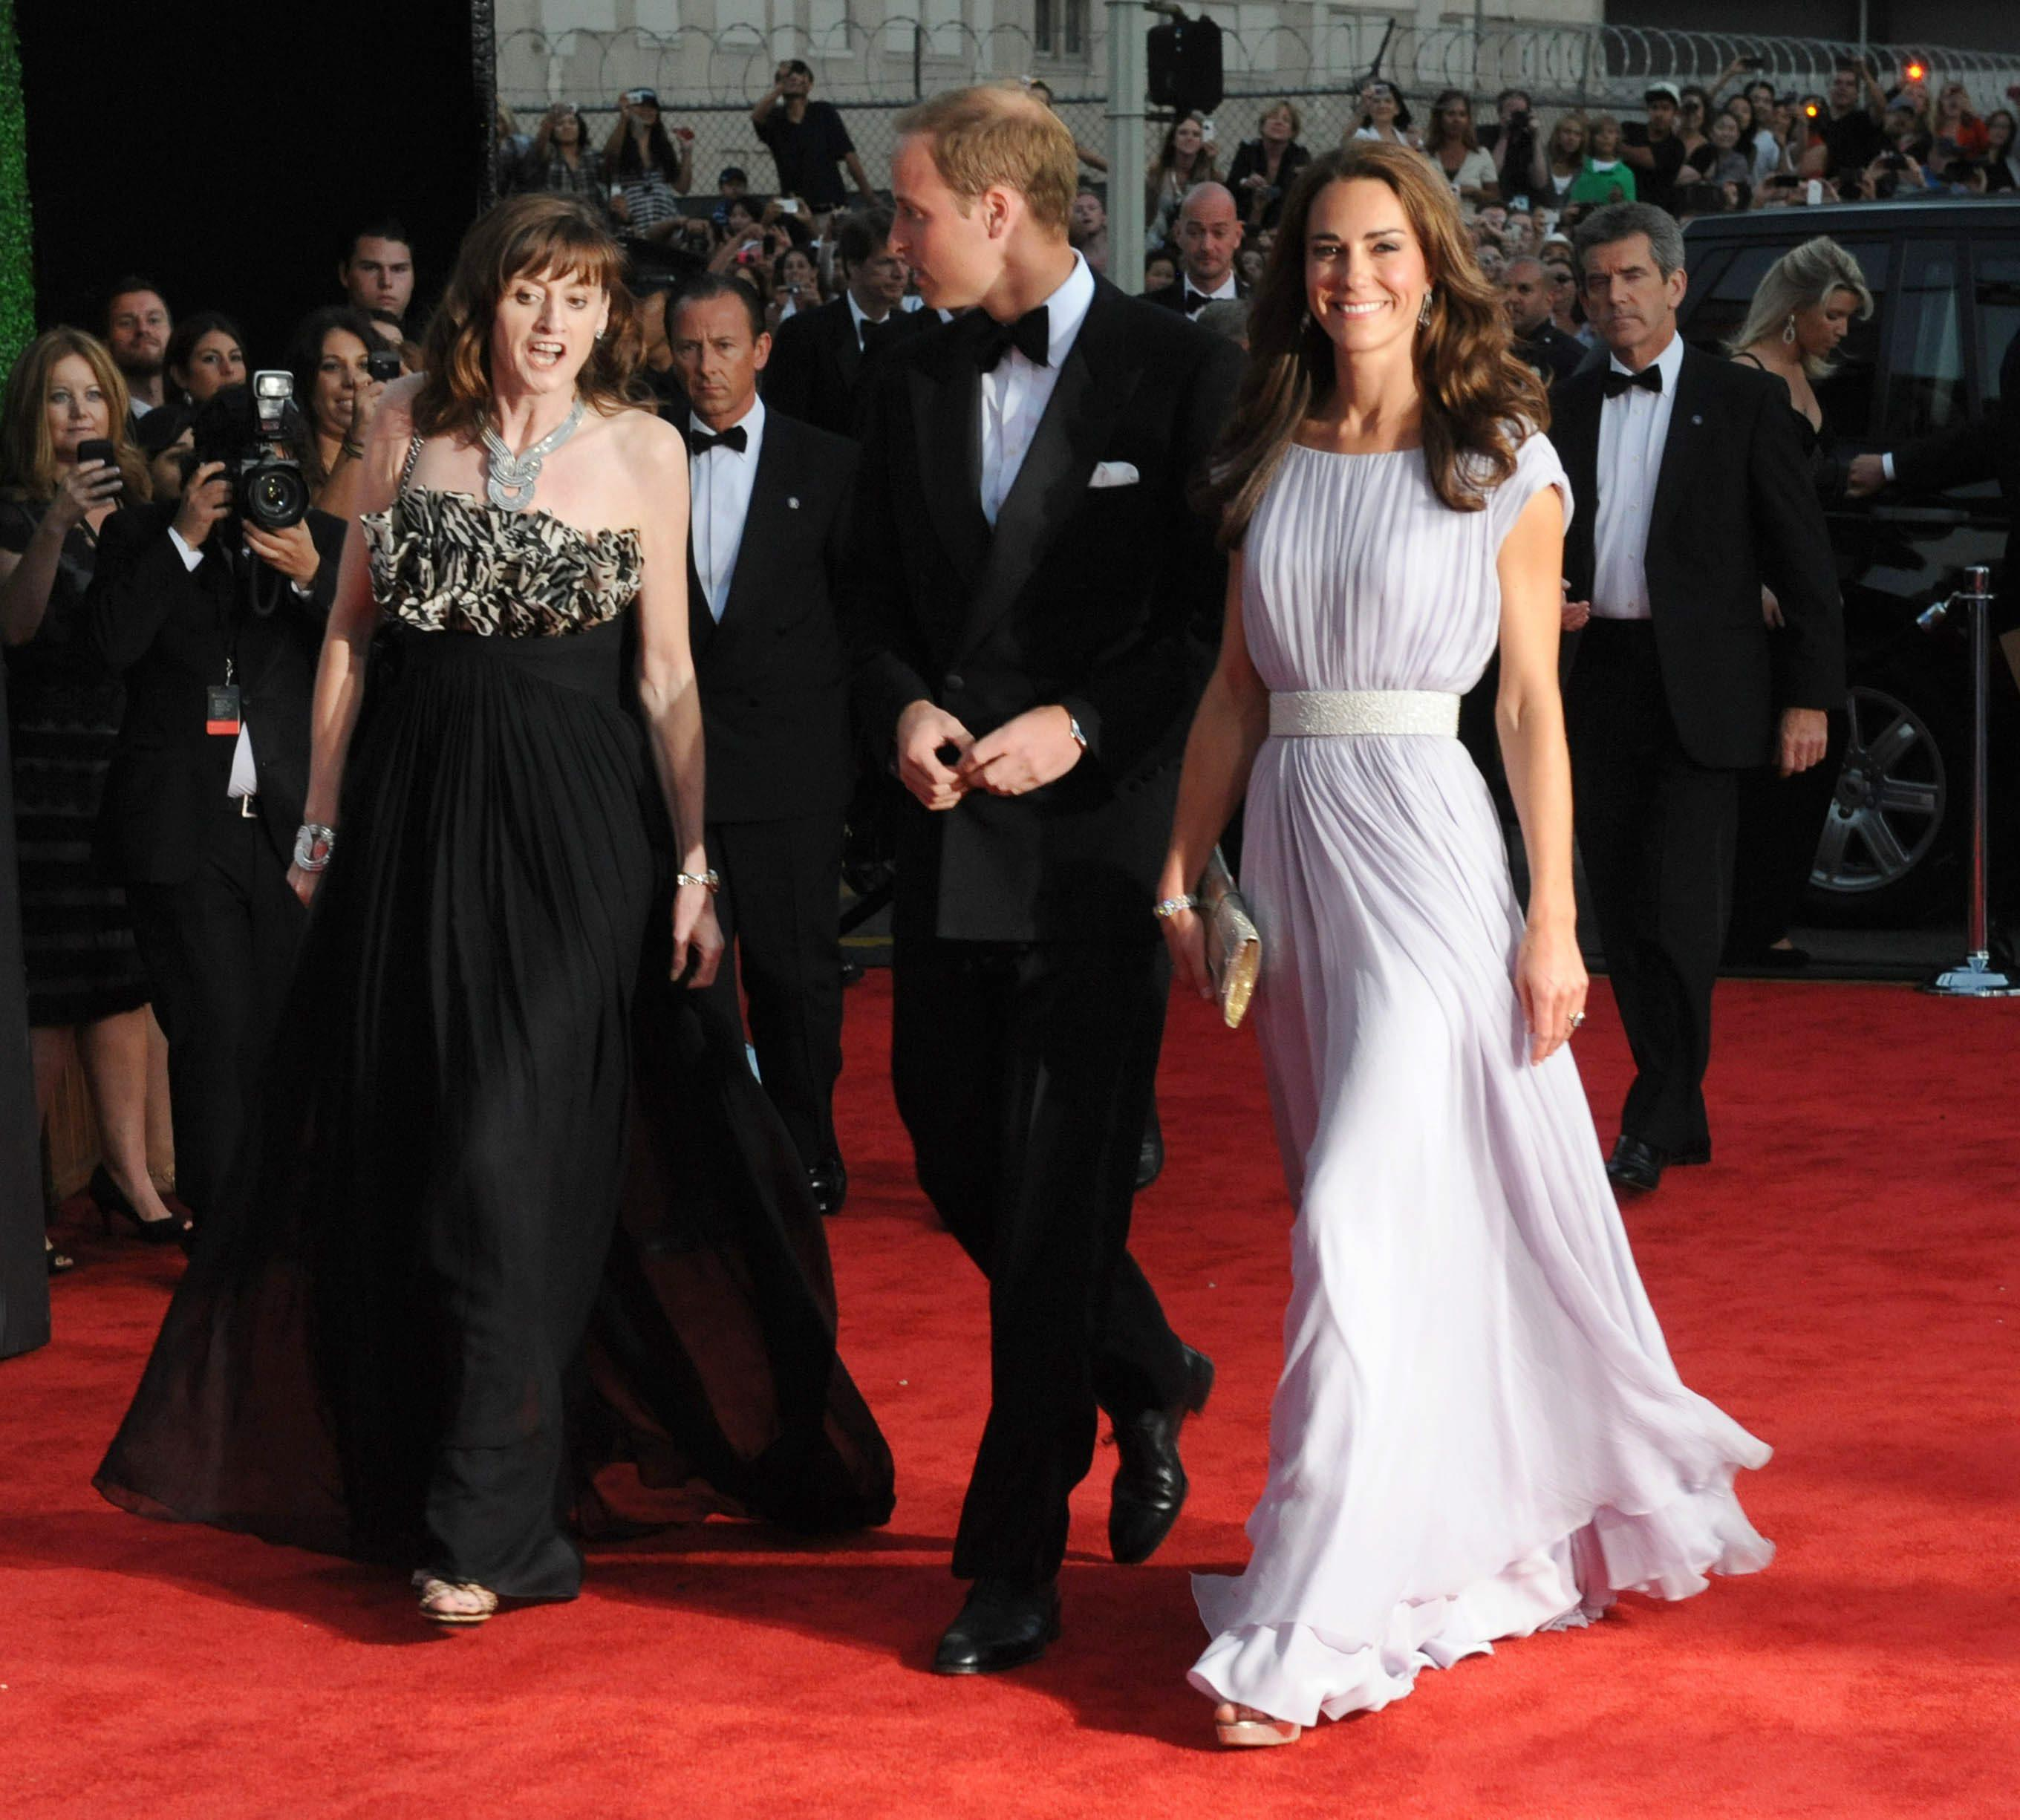 67743c81497e Kate Middleton's Top 15 Looks Of 2011 - Flare